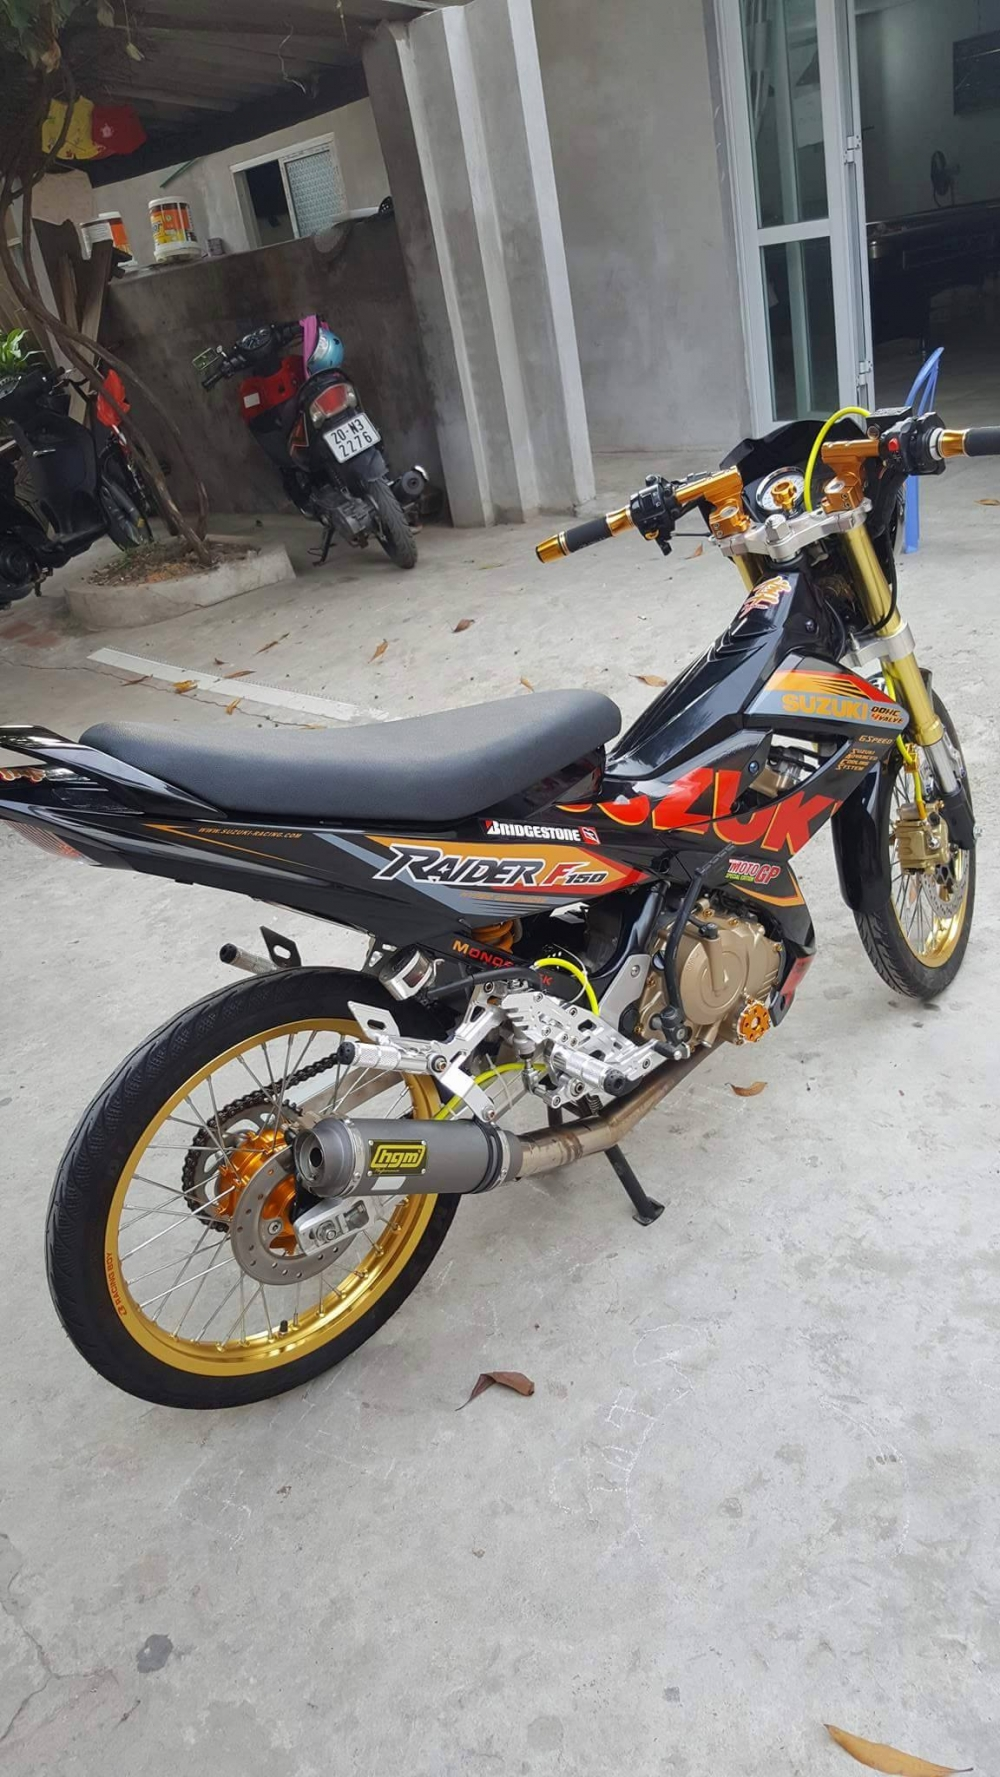 Suzuki Raider day noi bat trong version Racingboy - 4